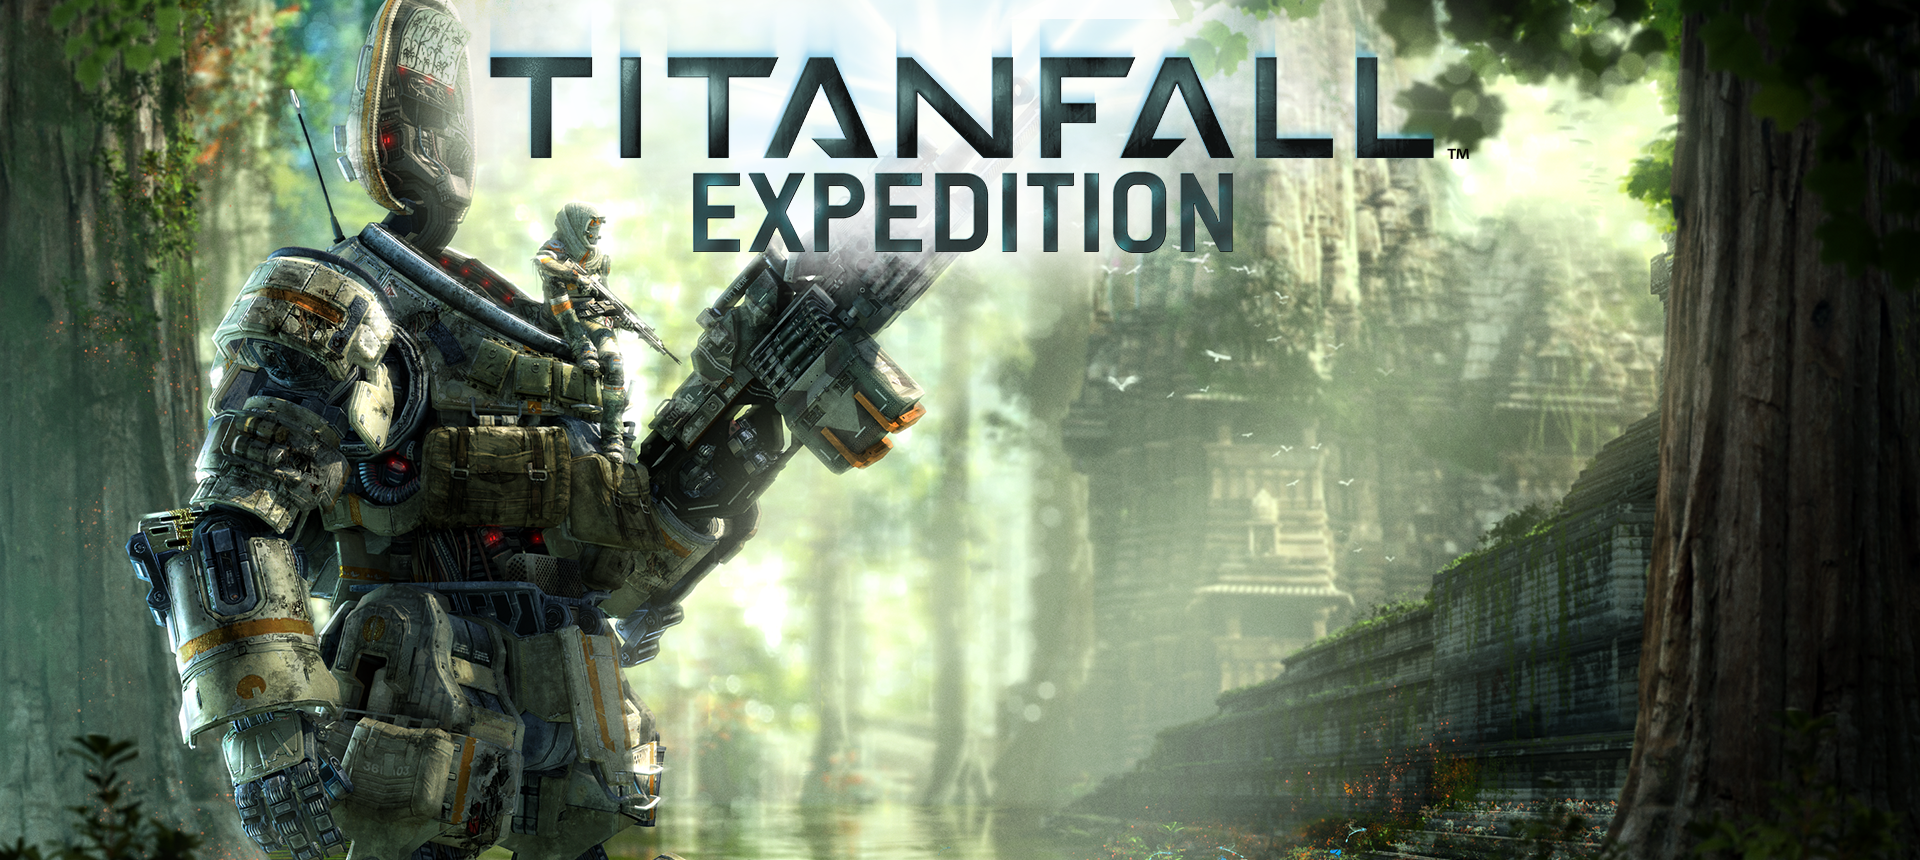 Sponsored Video – TitanFall Expedition DLC Brings New Level to both Gameplay and Graphics